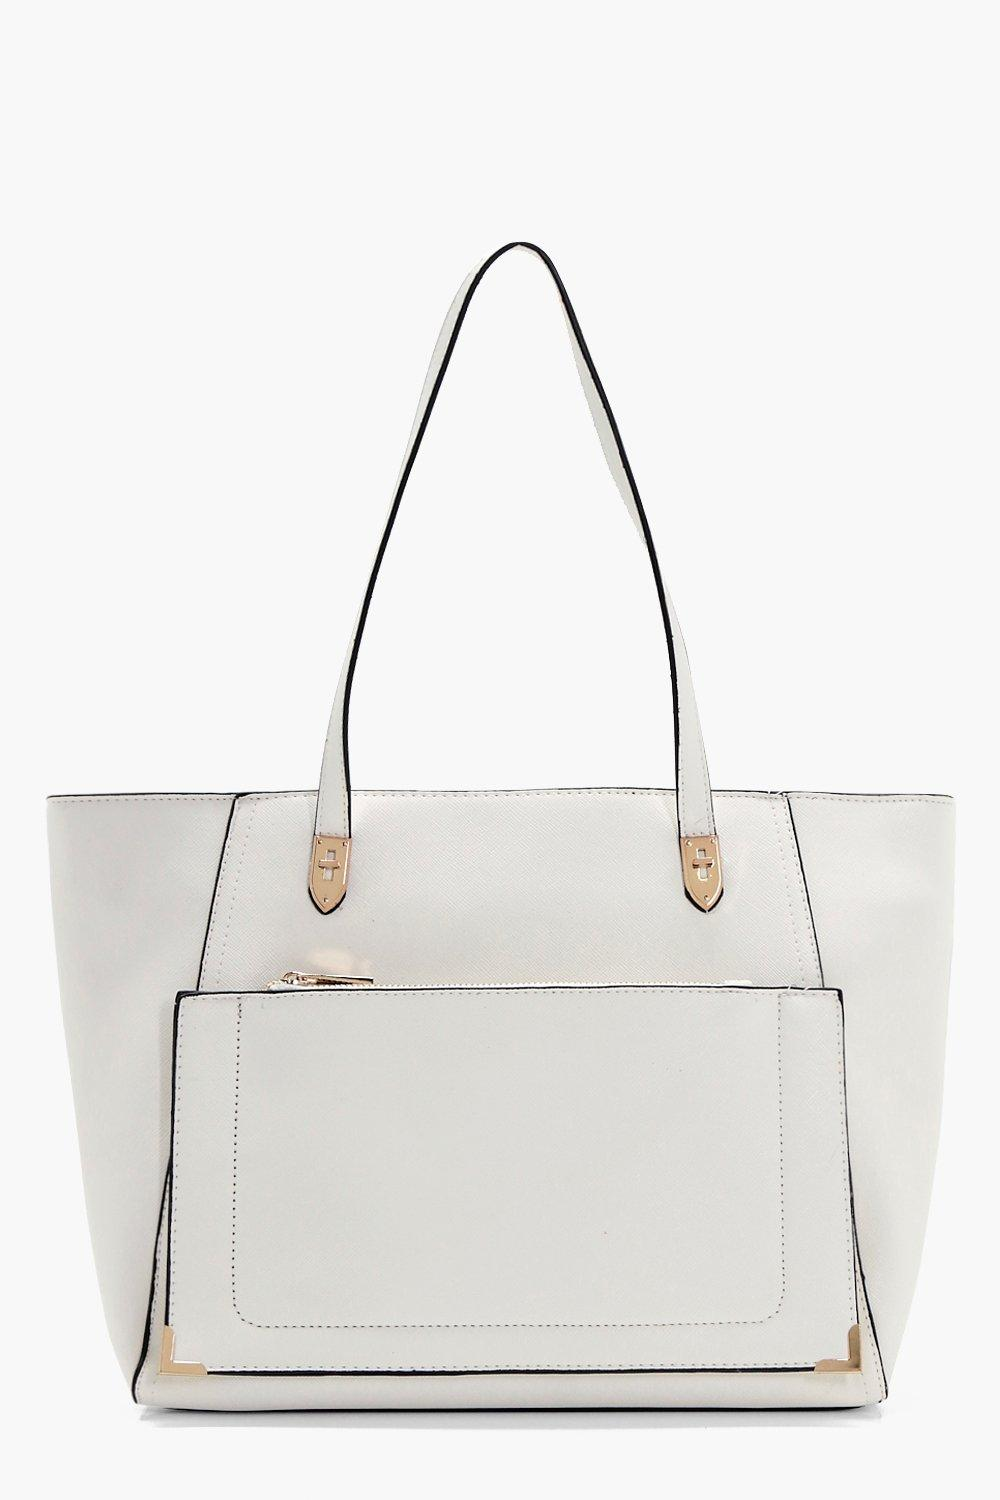 Front Pocket Tote - cream - Maysie Front Pocket To